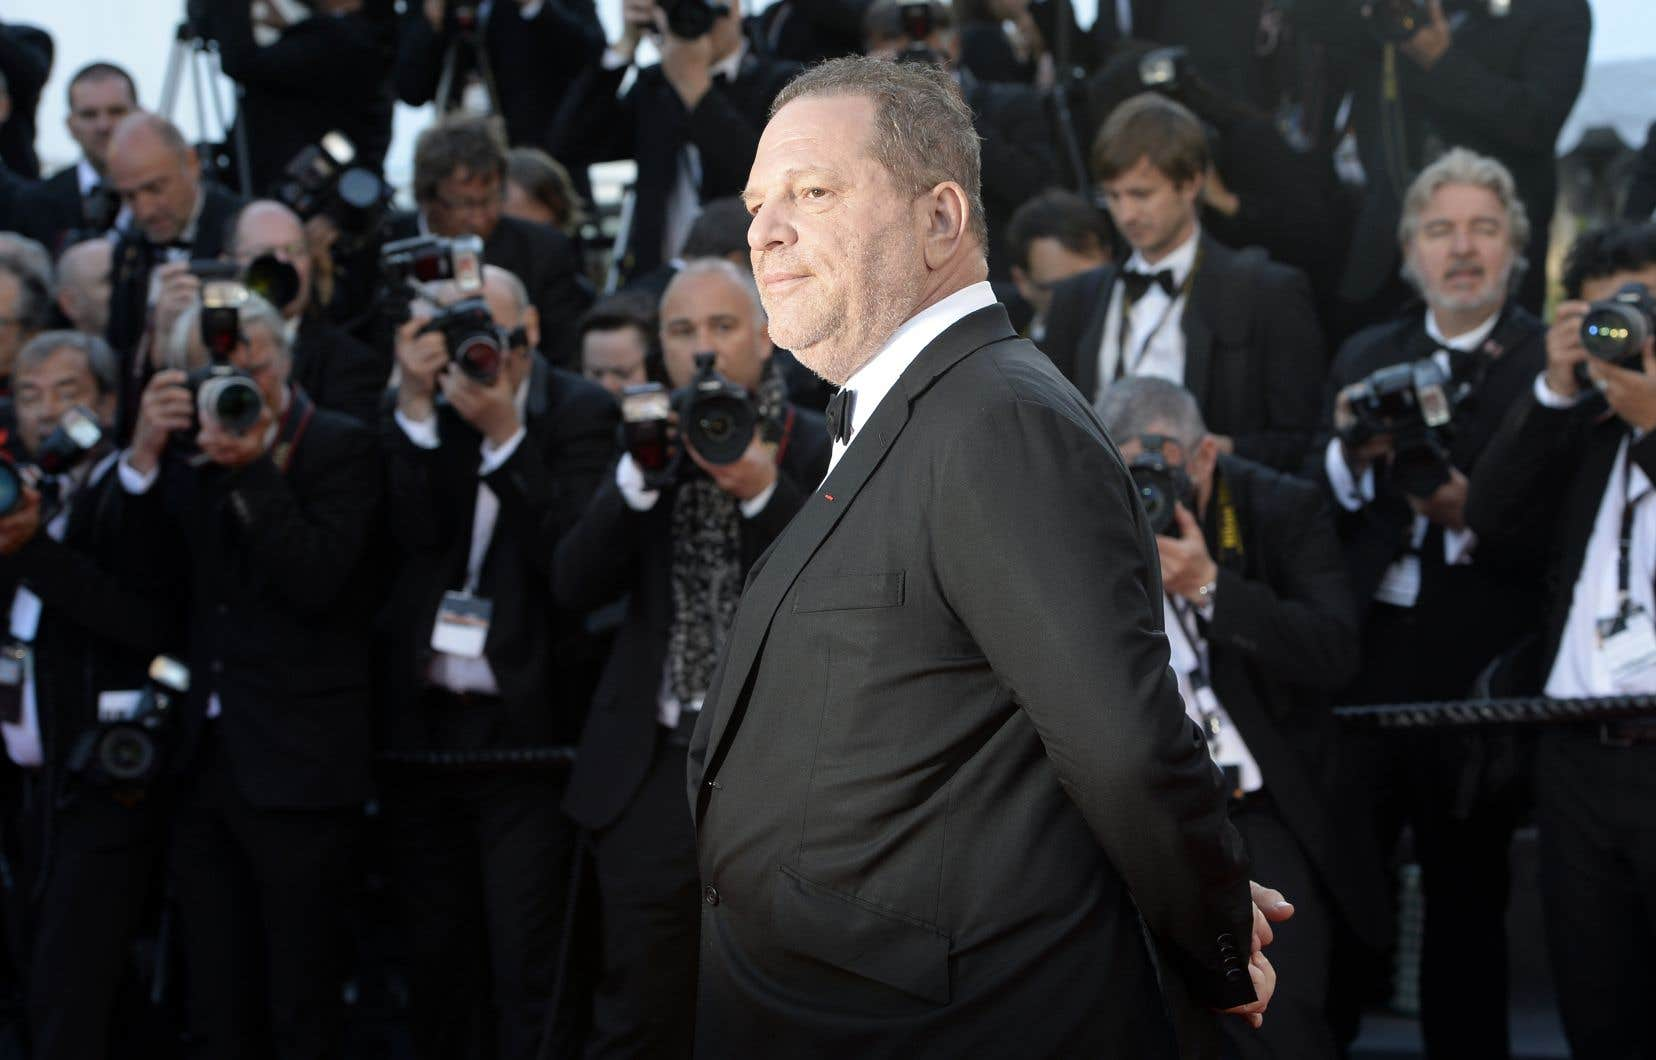 Harvey Weinstein a personnellement donné 1,4 million de dollars à des candidats ou comités démocrates ou au parti depuis 1990, selon le Center for Responsive Politics.